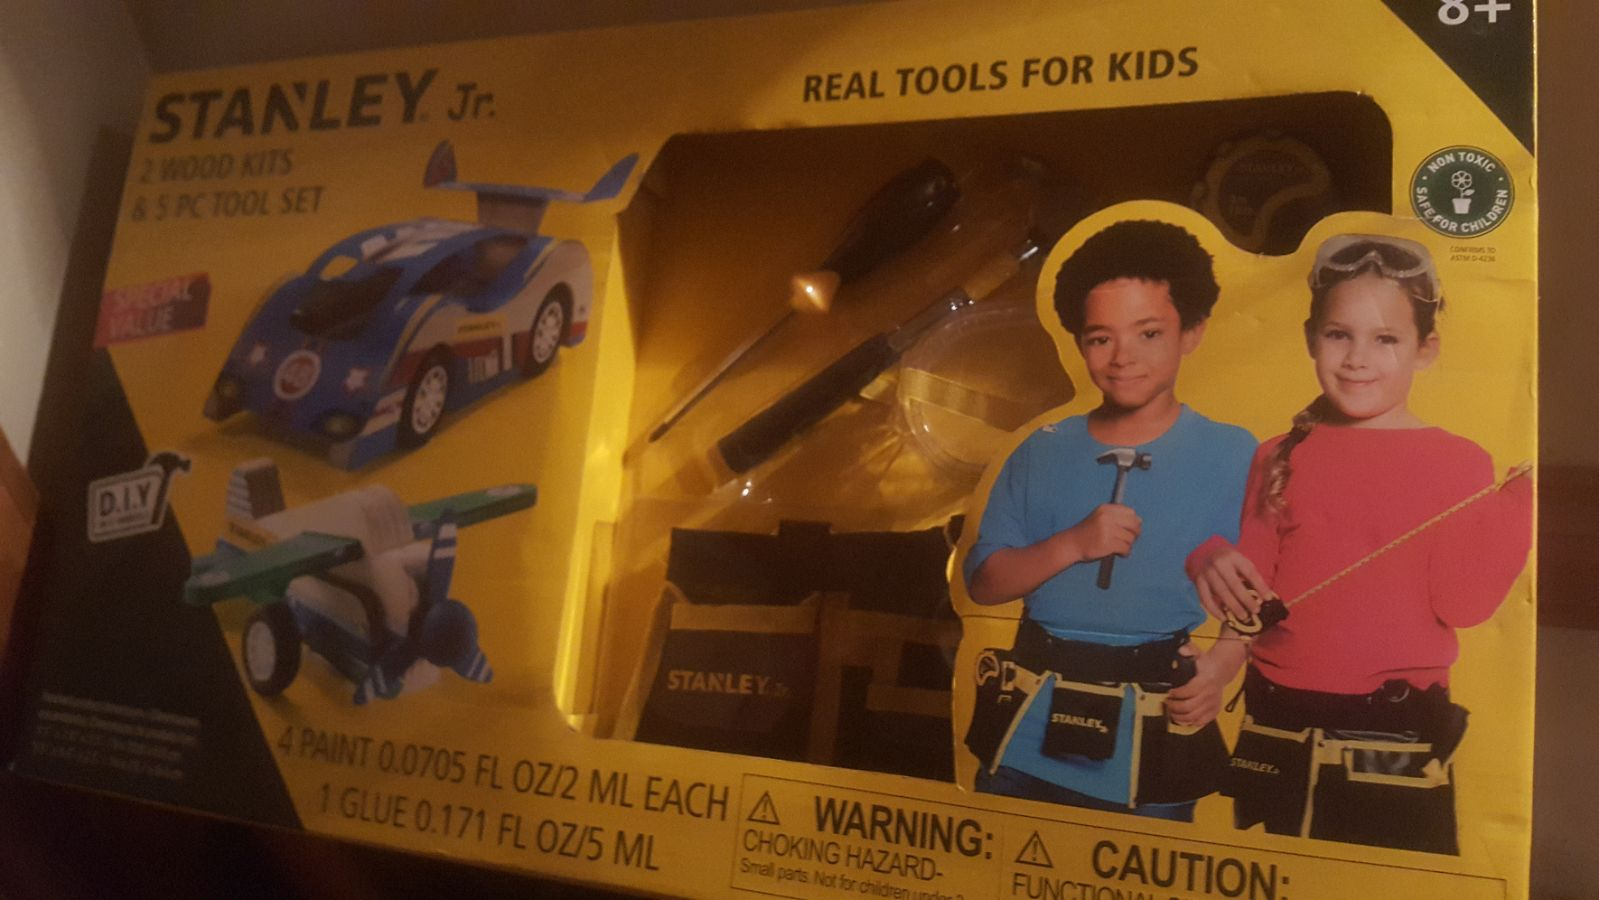 Stanley Jr real tools for kids